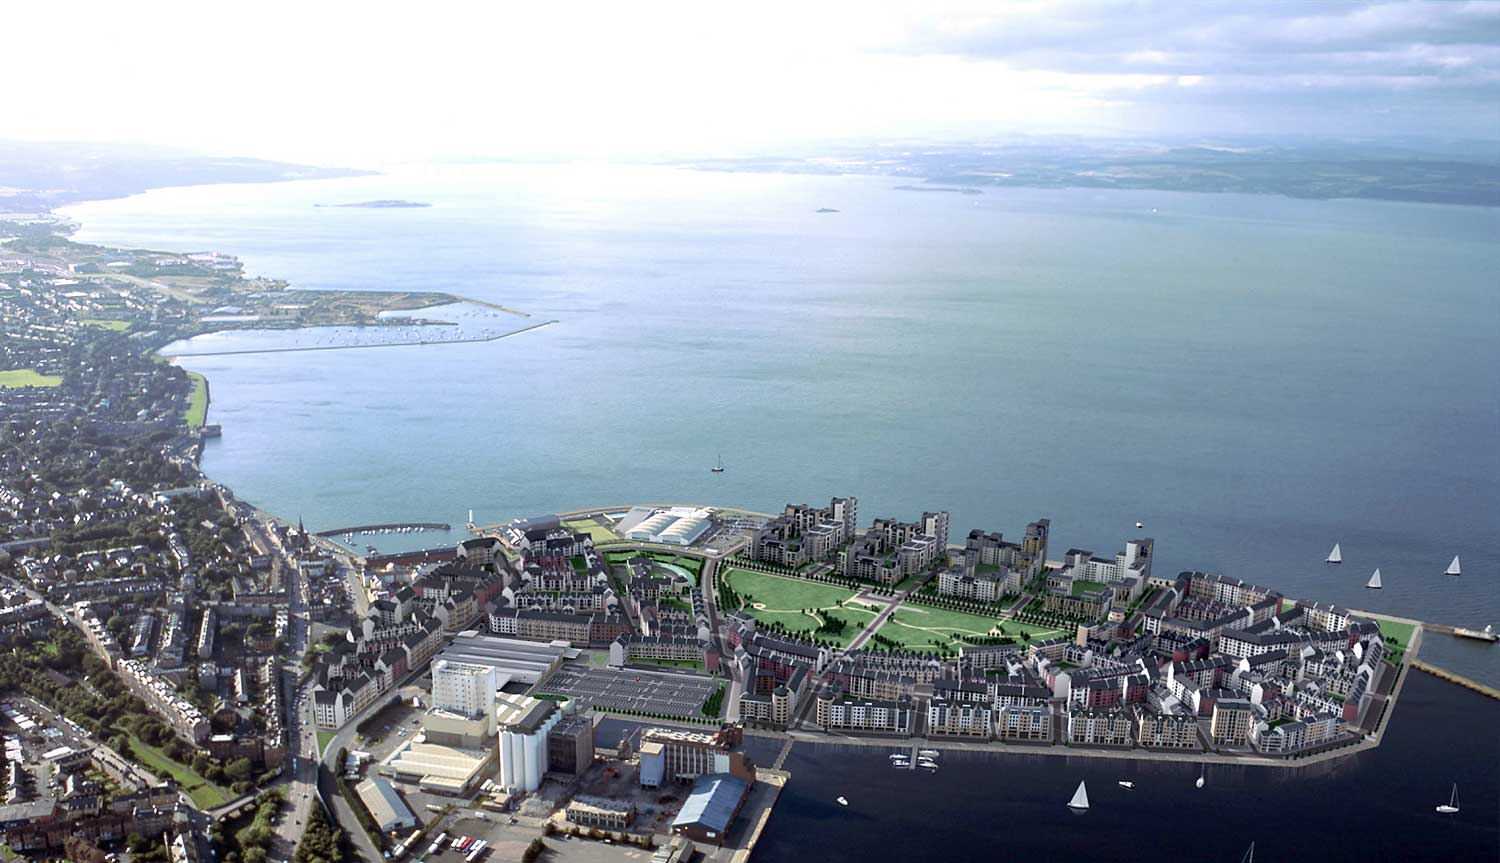 Edinburgh Forthside  -  Aerial View  -  Leith Western Harbour in the foreground.  The Firth of Forth in the background.